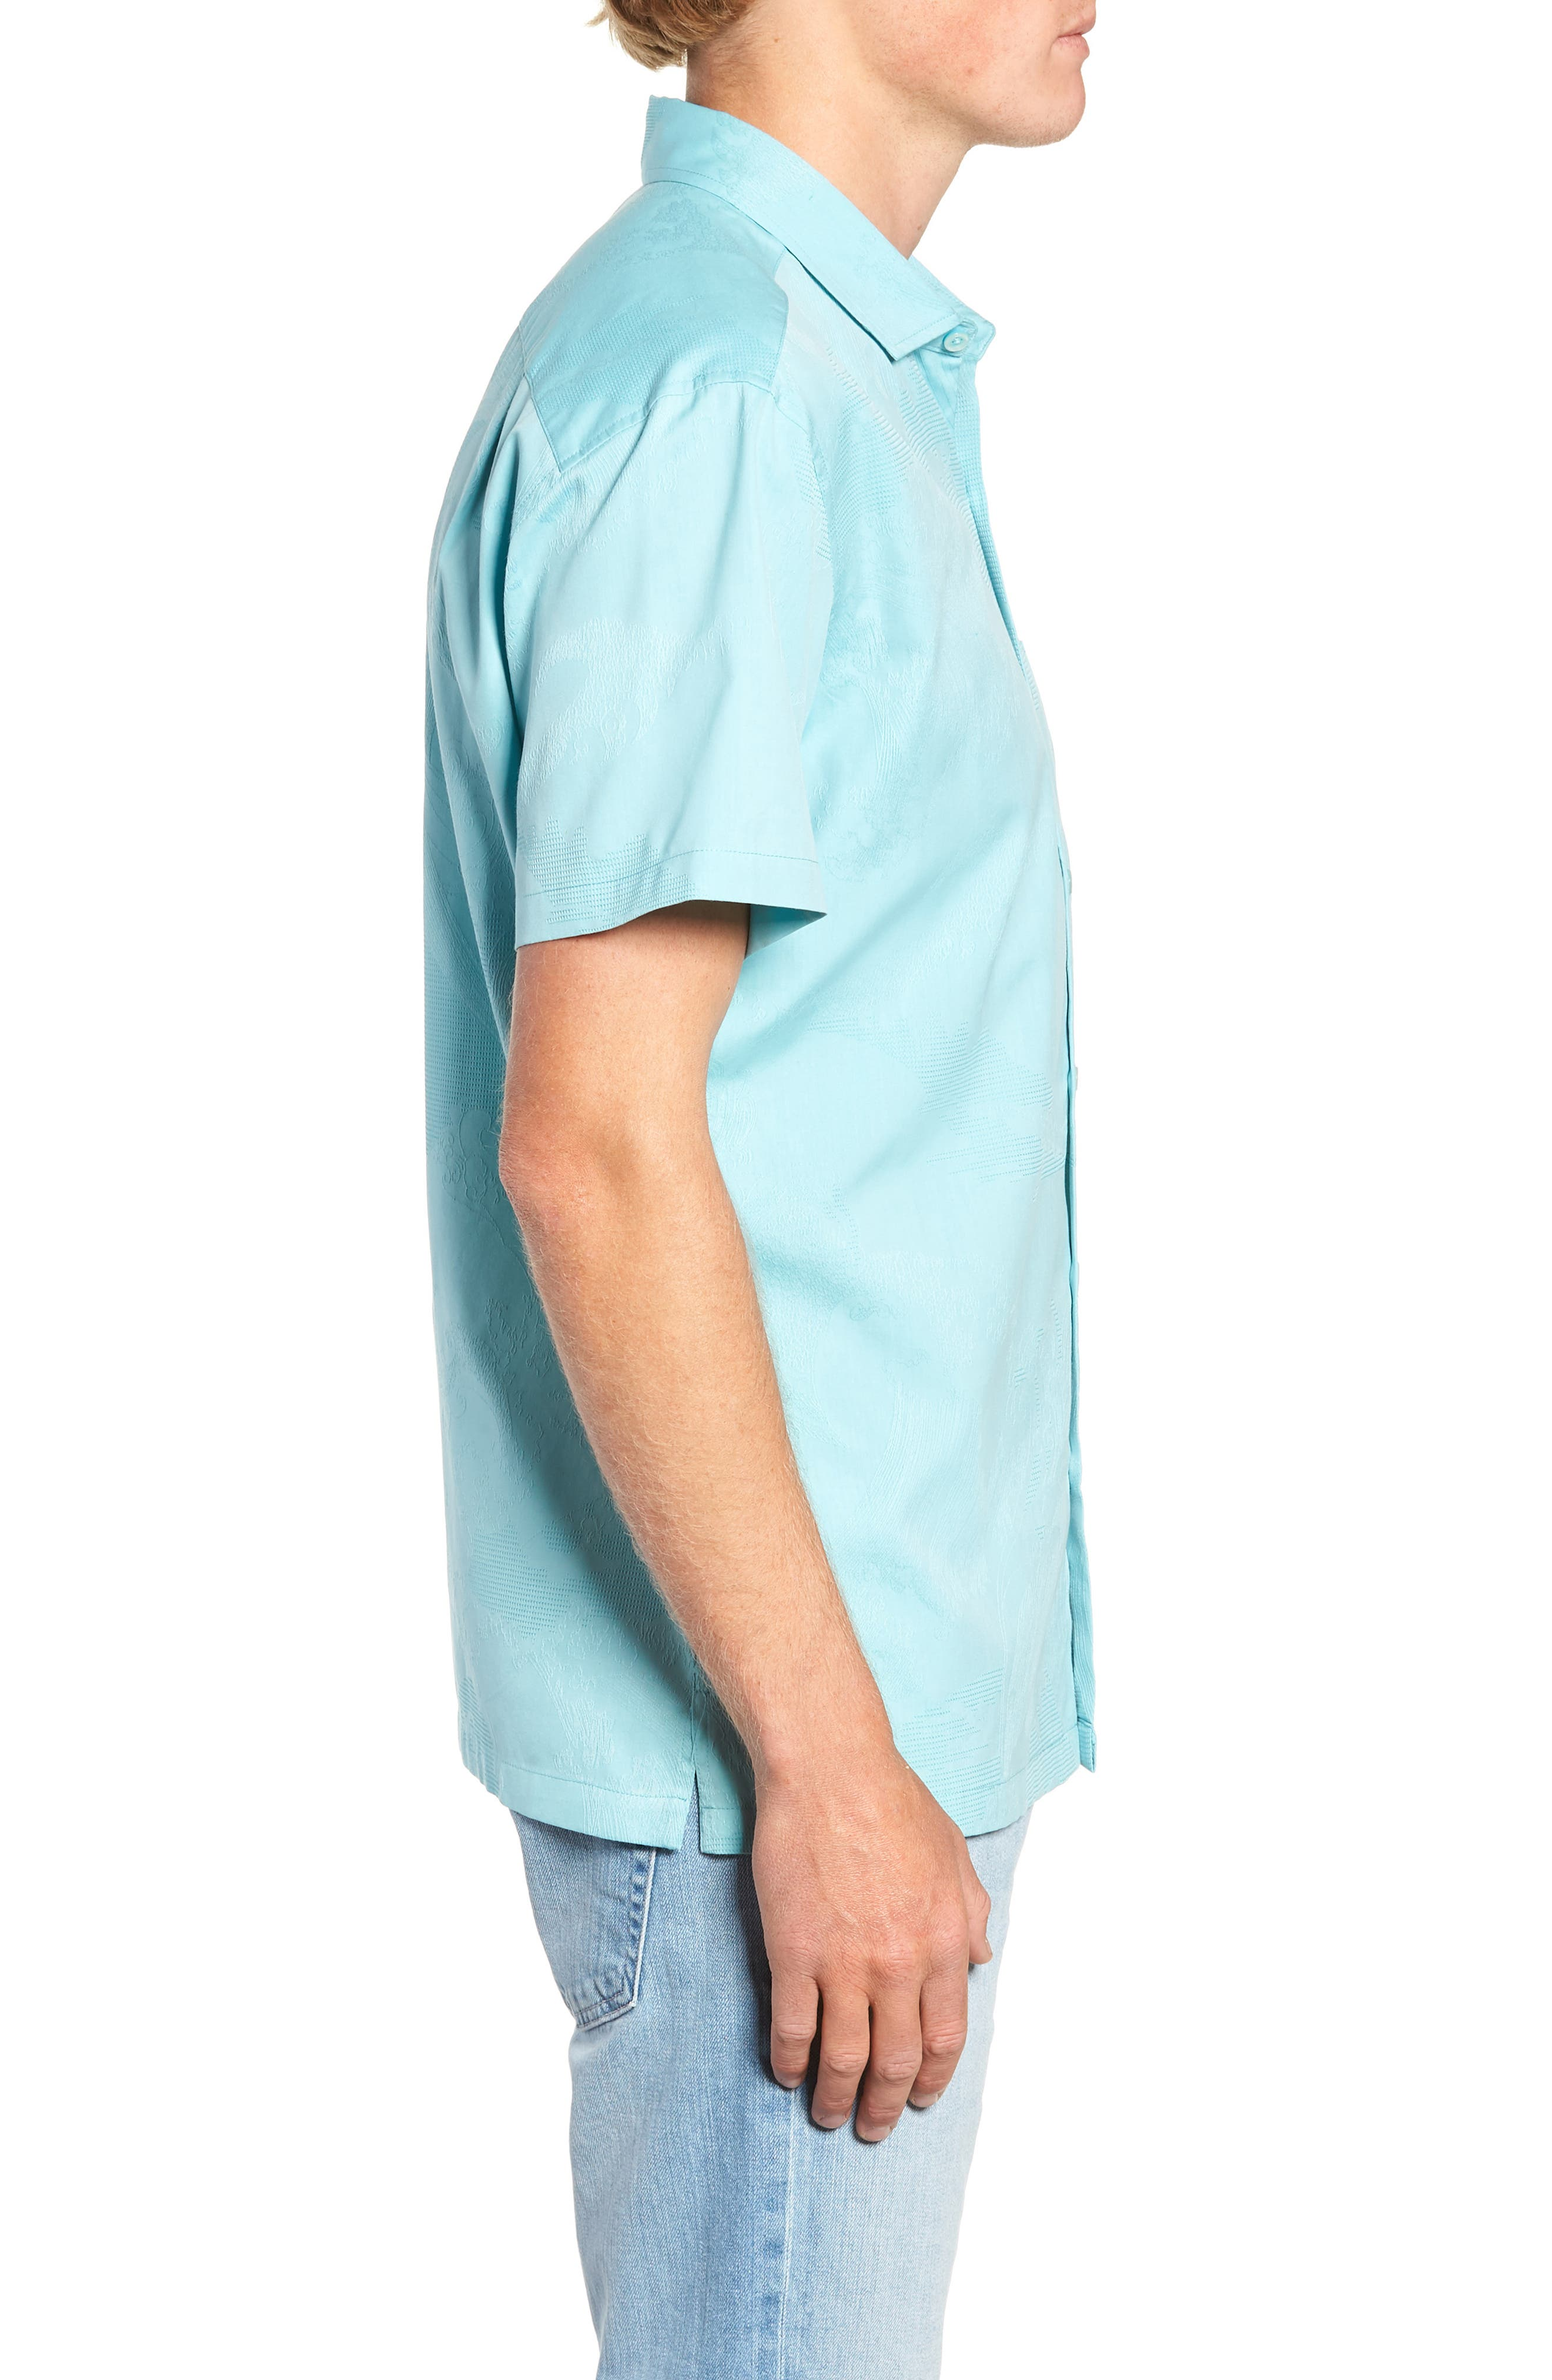 Seas the Day Trim Fit Camp Shirt,                             Alternate thumbnail 3, color,                             Surf